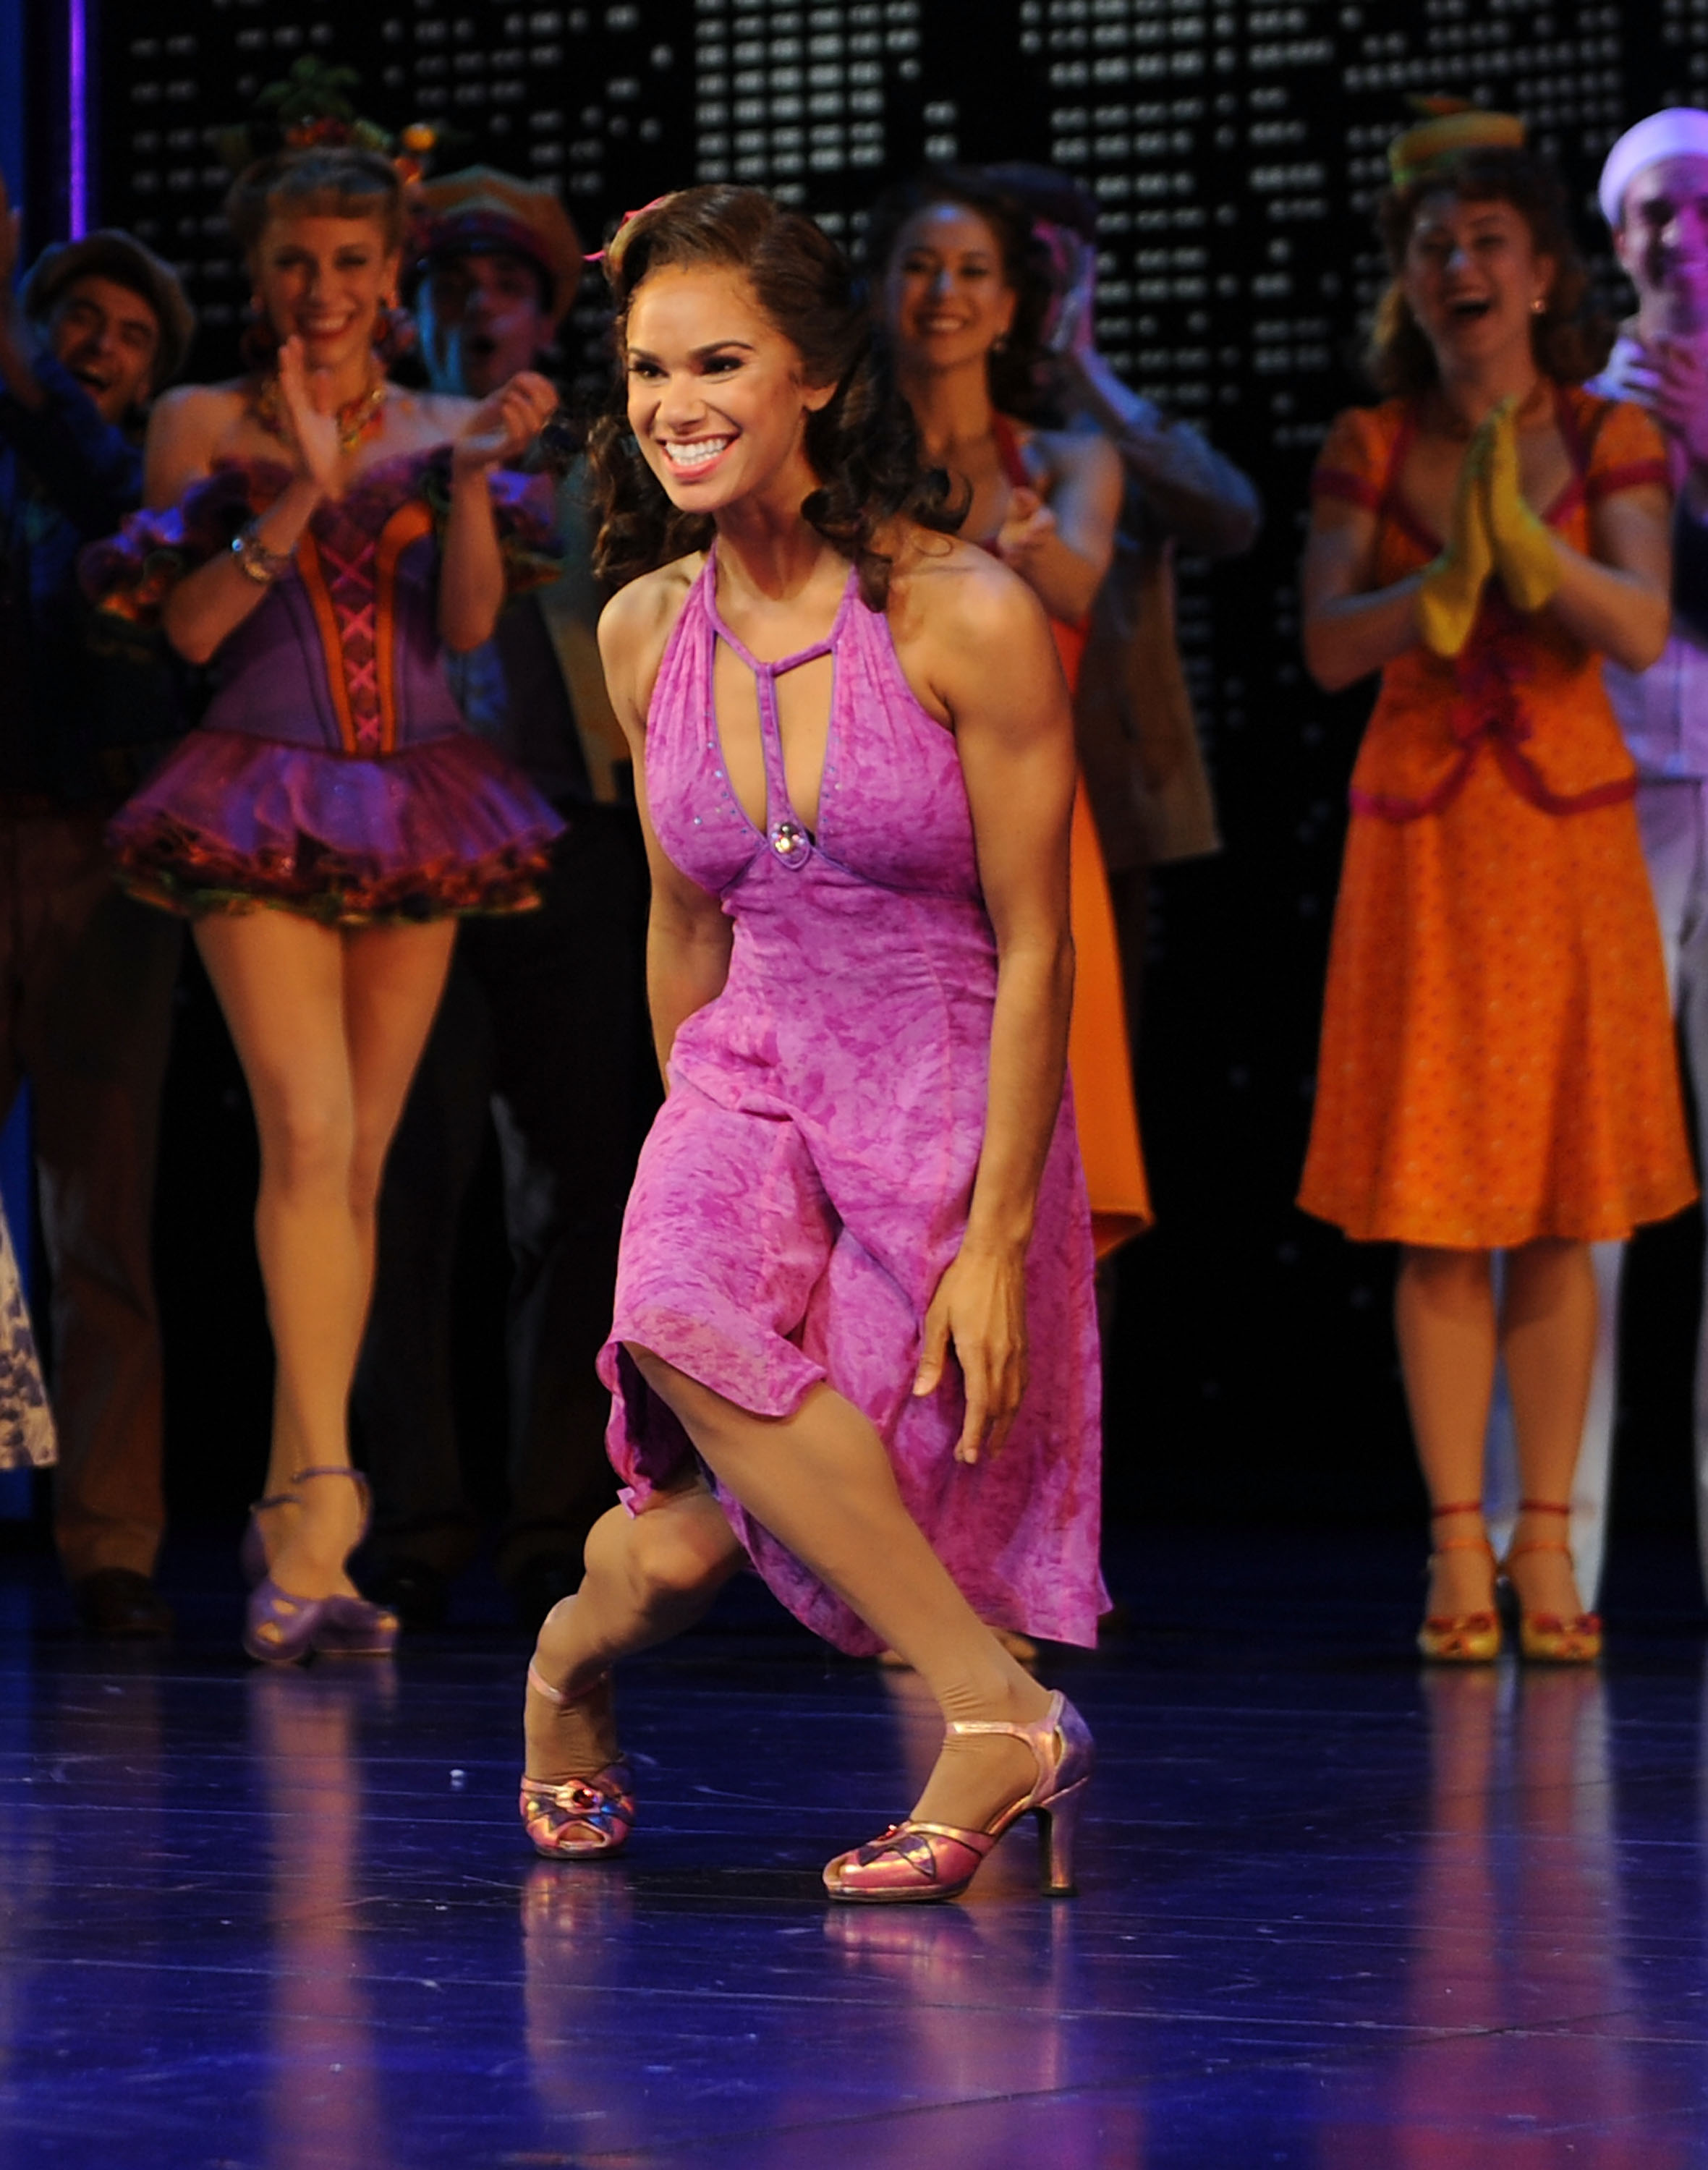 A photo of Misty Copeland taking a bow in a purple dress on a Broadway stage